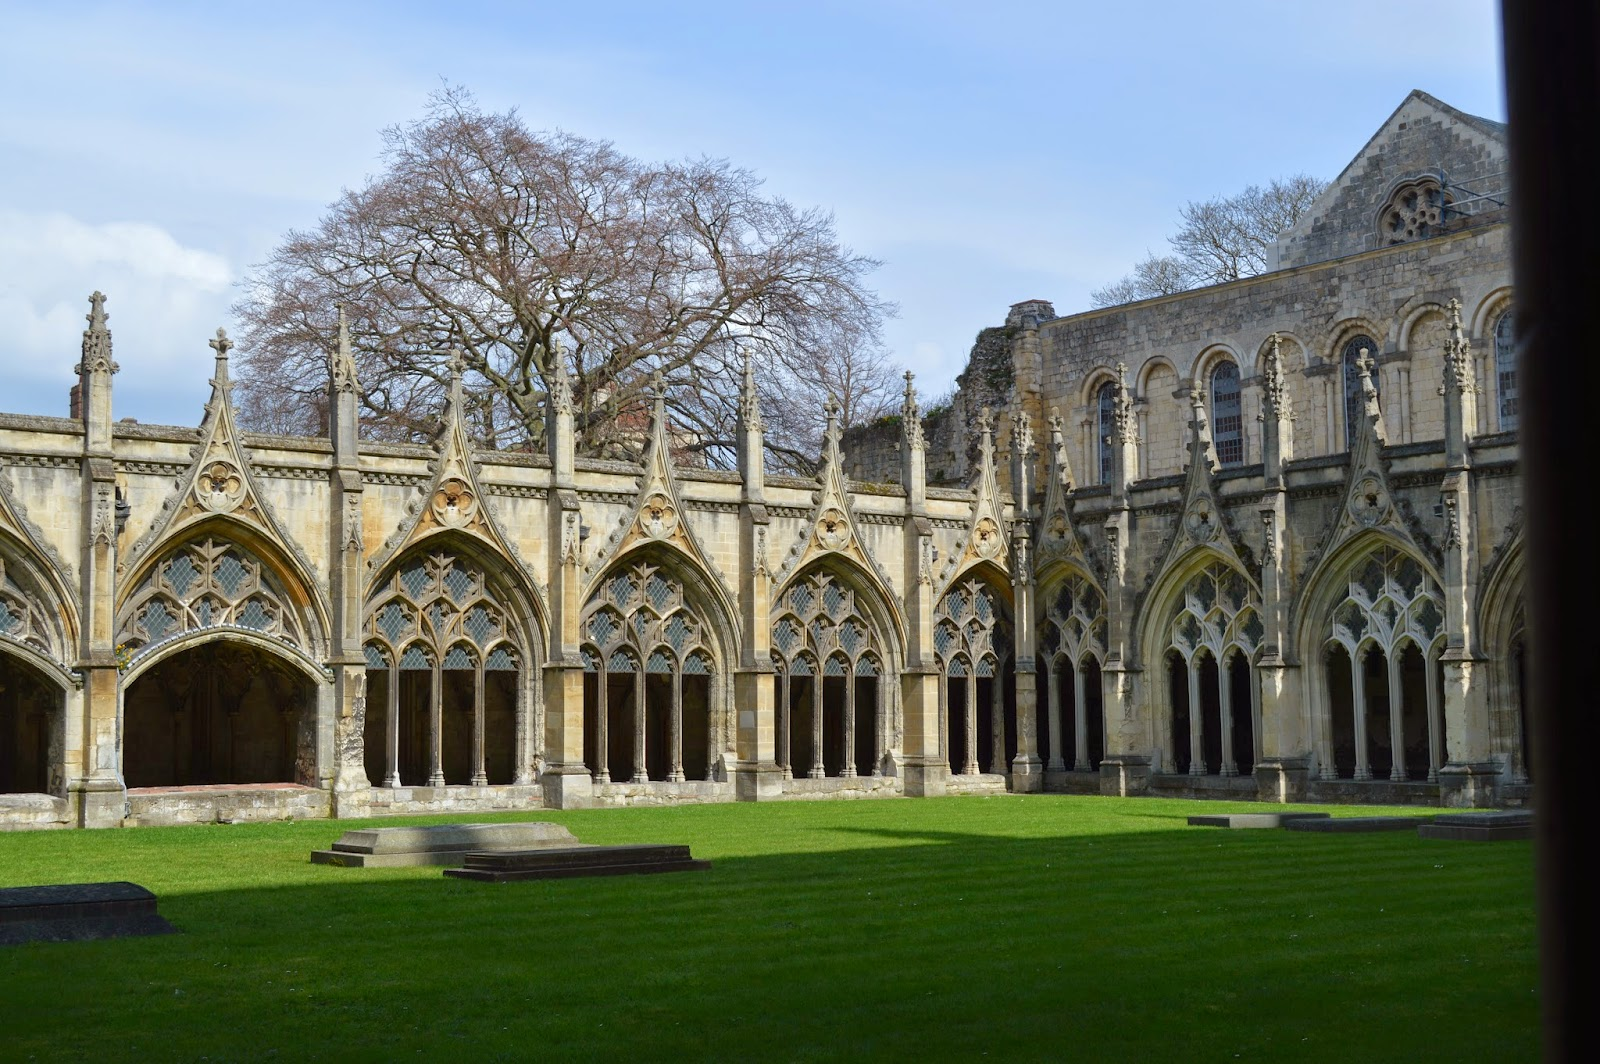 Canterbury Cathedral, Thomas Becket, martyr, Saint Augustine, worship, church, visit, Kent, day trip, religious, old, medieval, stained glass, impressive, big, history, historical, spires, decorated, photo, photograph, Christian, cloisters